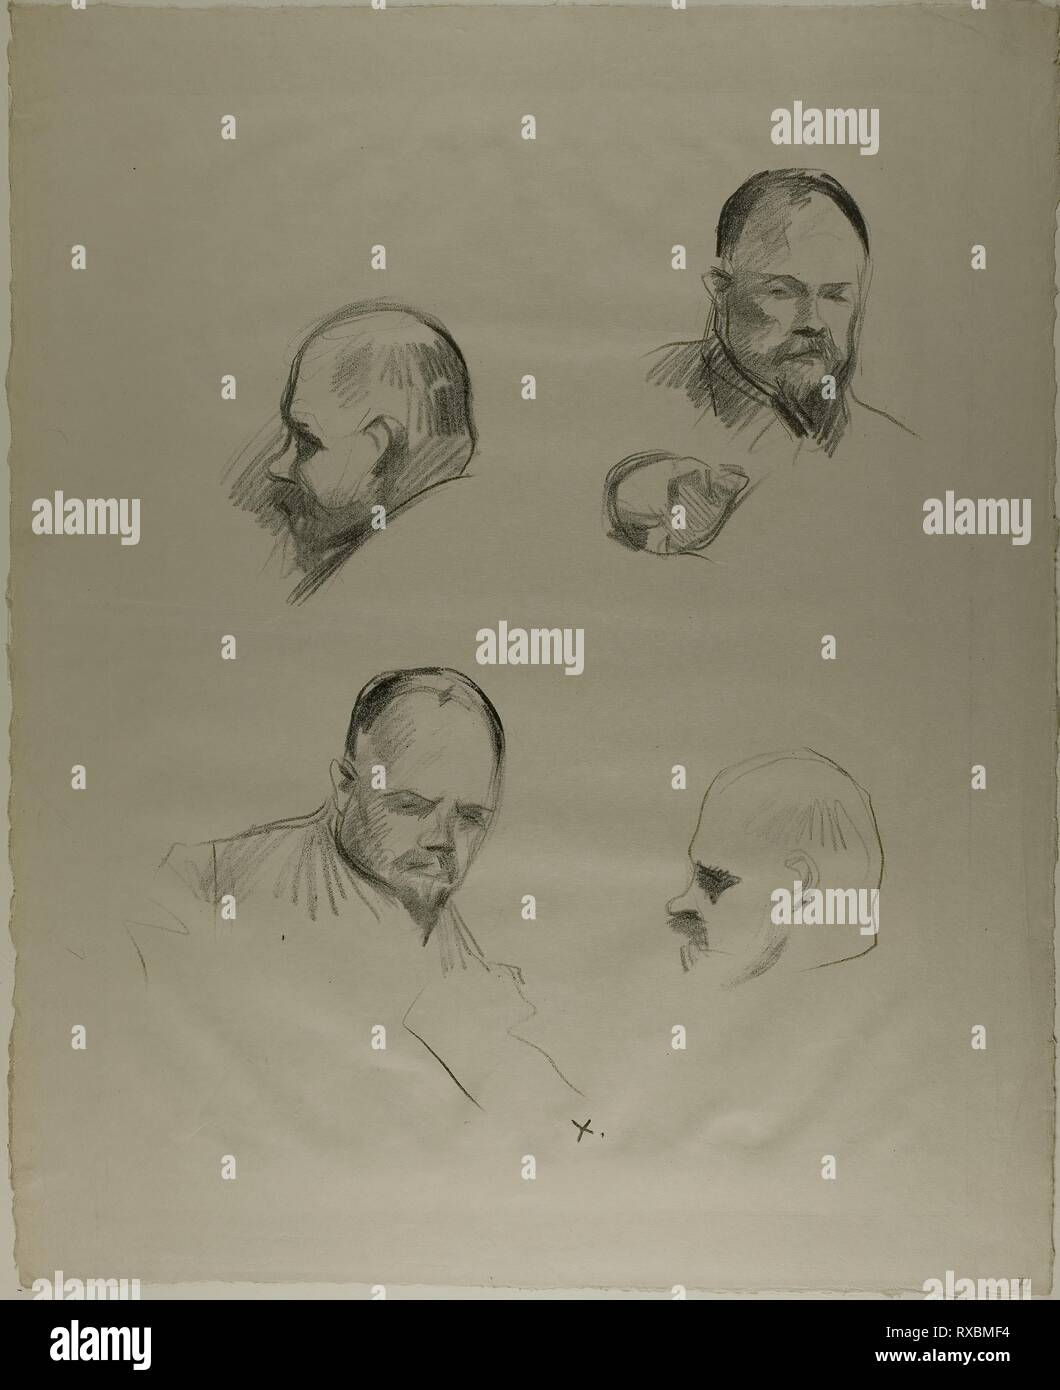 Ambroise Vollard, Four Sketches. Jean Louis Forain; French, 1852-1931. Date: 1905-1915. Dimensions: 433 × 350 mm (image); 569 × 463 mm (sheet). Lithograph on cream wove paper. Origin: France. Museum: The Chicago Art Institute. - Stock Image